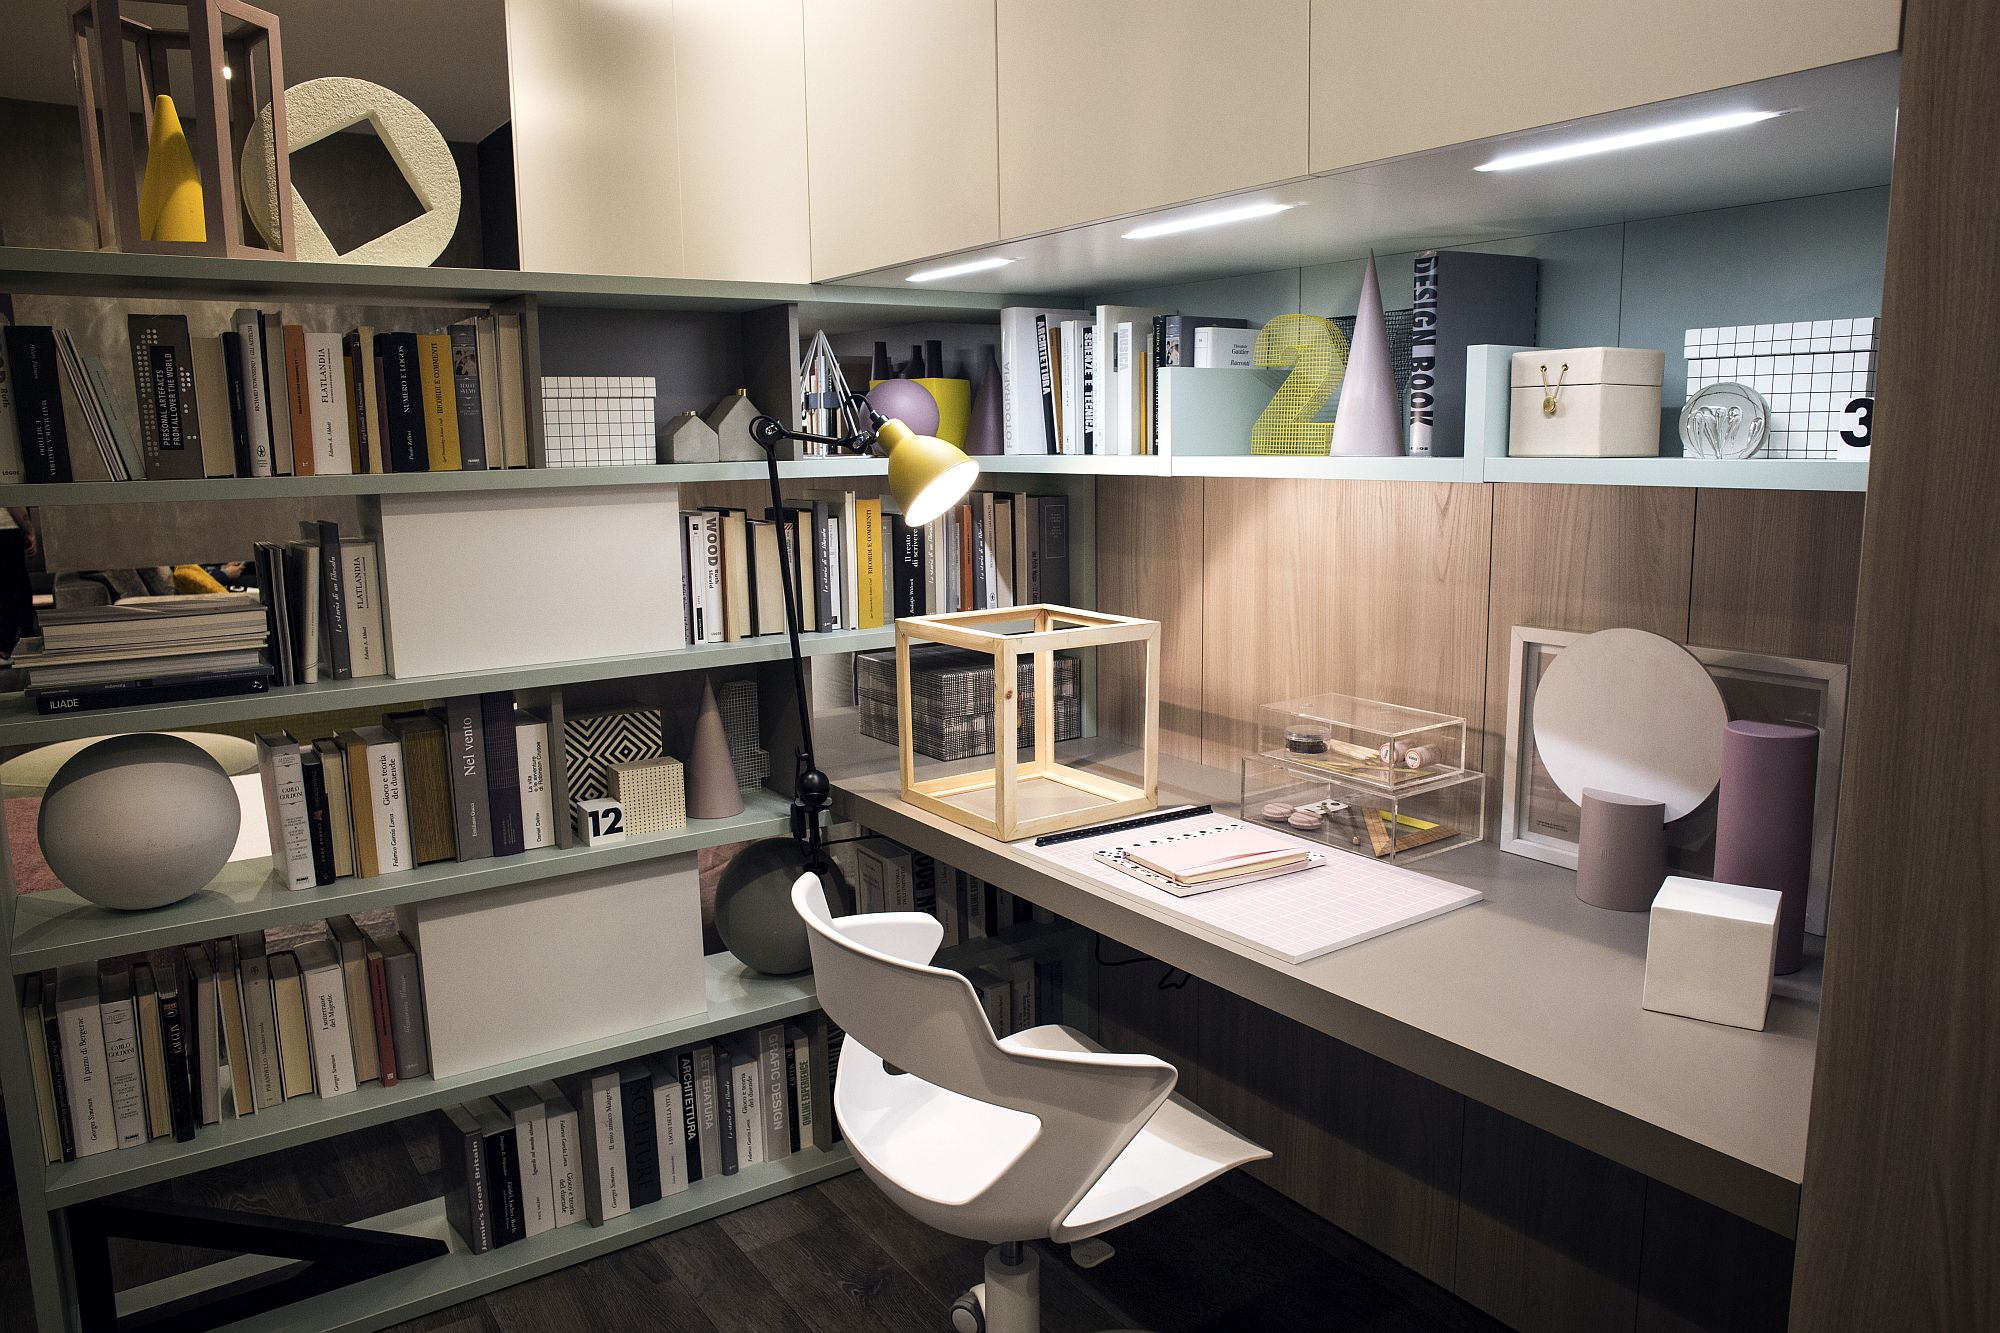 Under-cabinet LED lighting adds to the appeal of the bookshelf